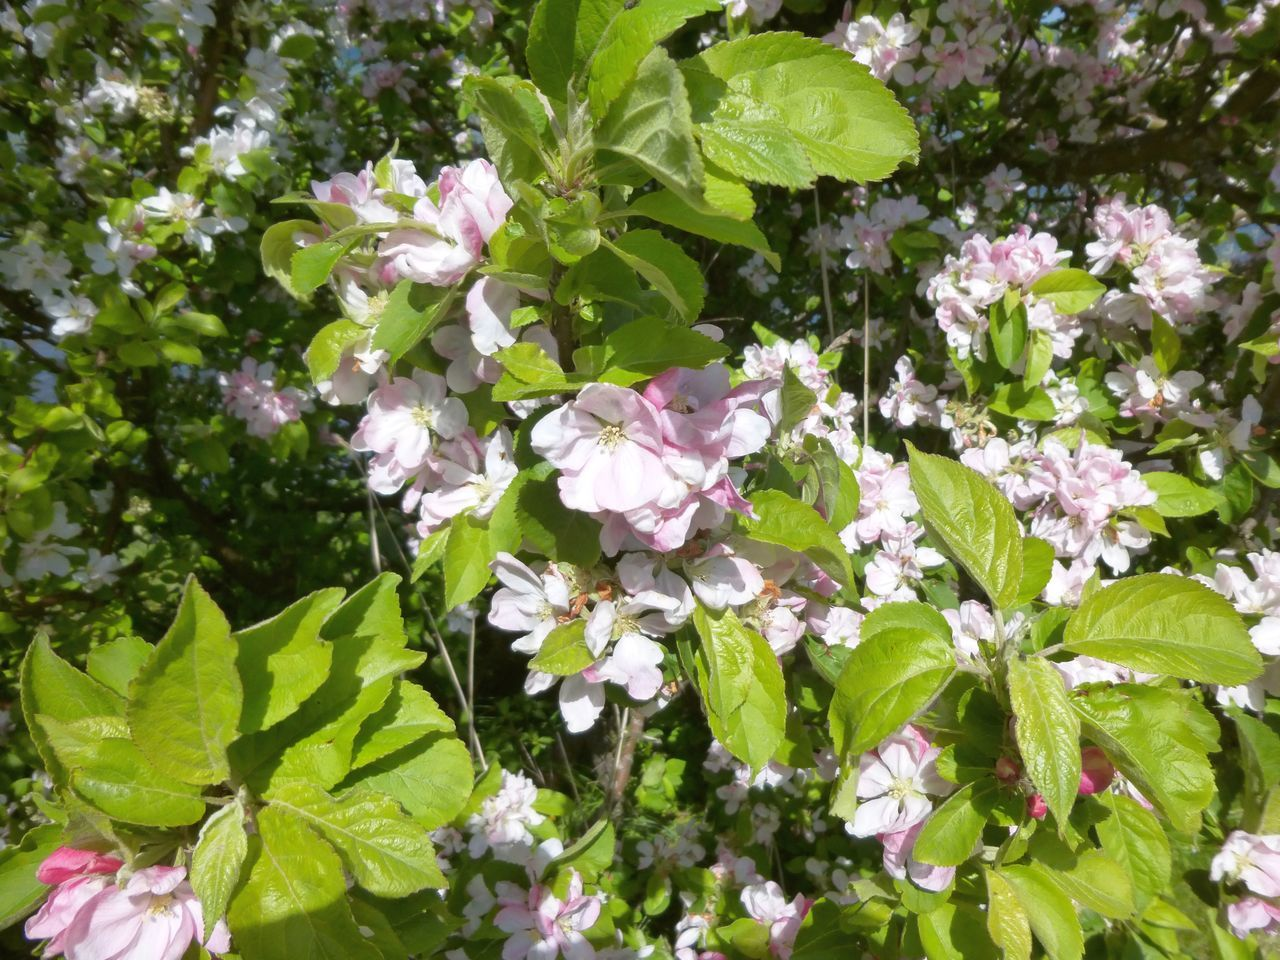 High Angle View Of Fresh Apple Blossom Flowers Blooming In Garden